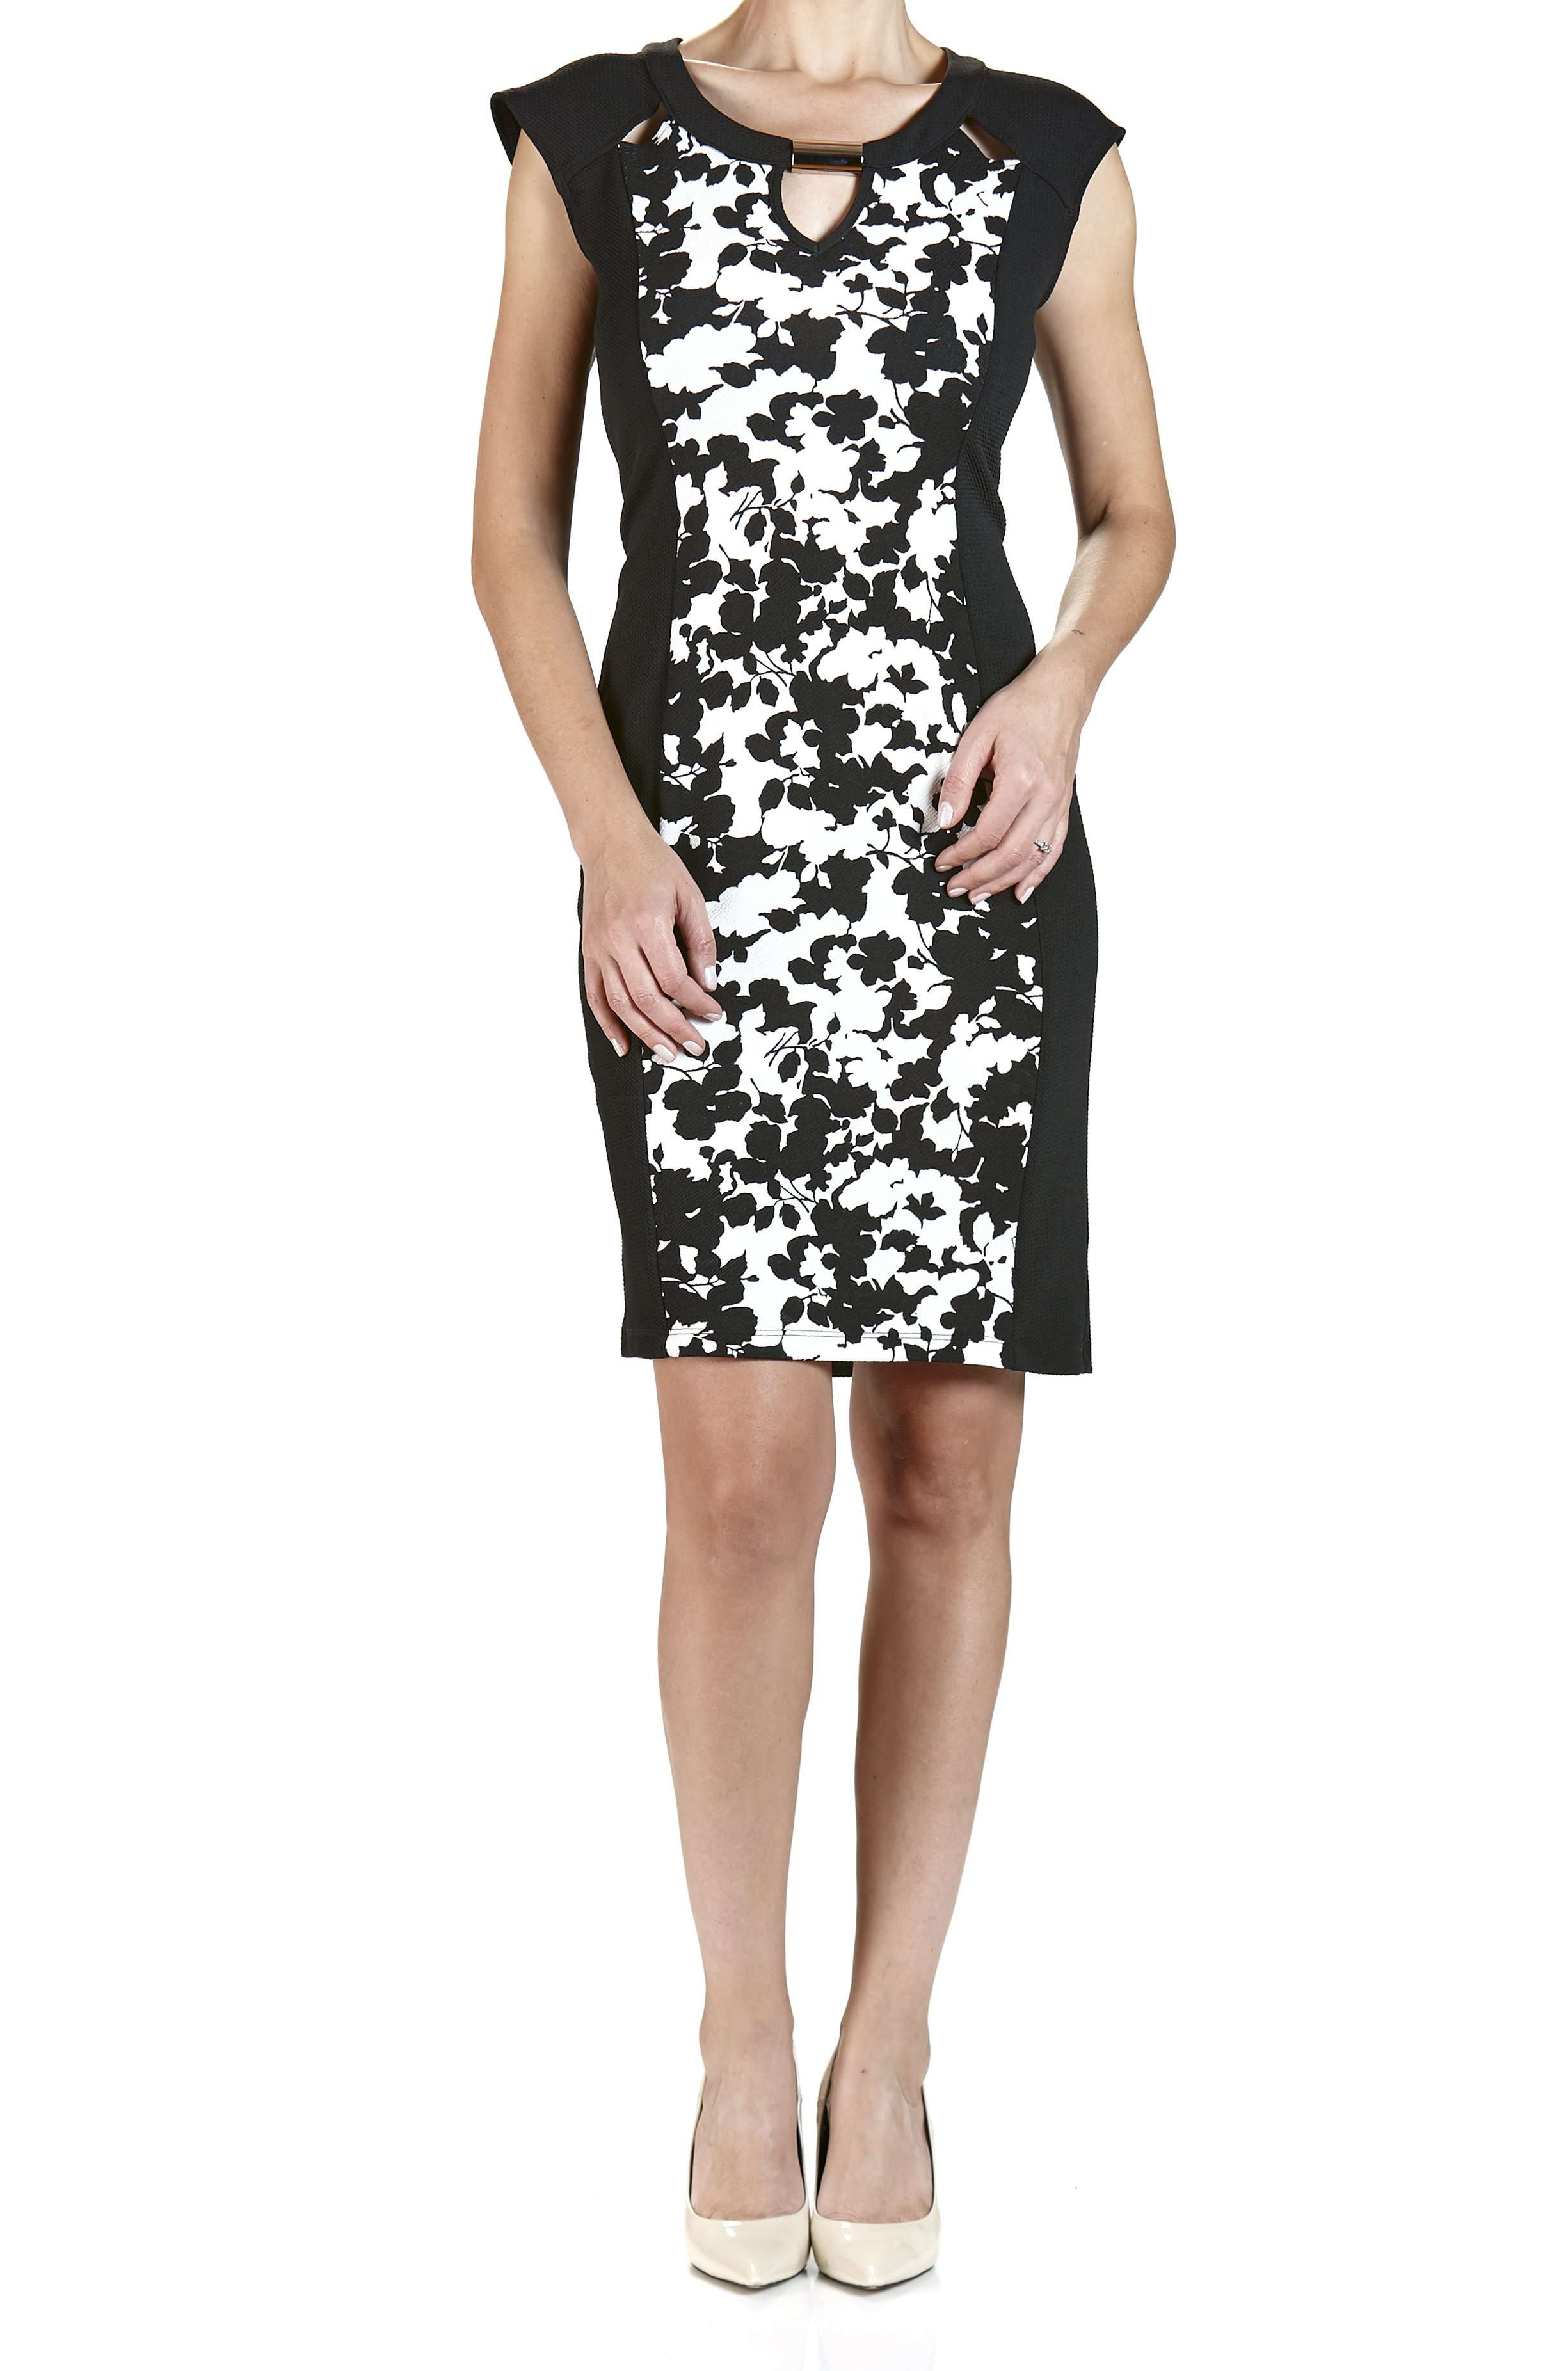 Women's Black and White Cocktail Length Dress - Yvonne Marie - Yvonne Marie